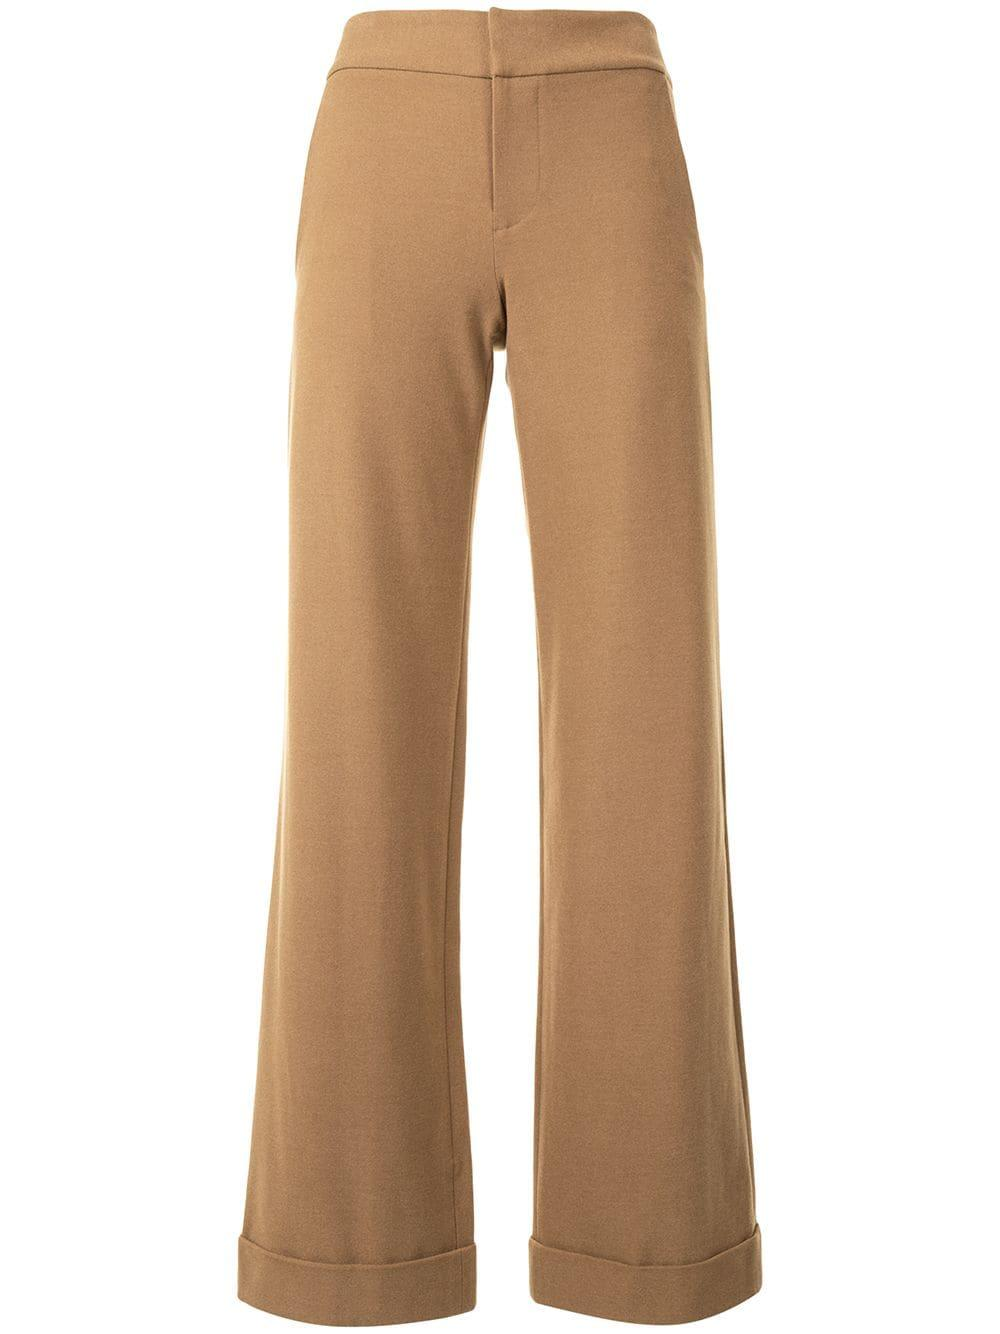 Dylan Low Rise Cuffed Pant Item # CL000261117